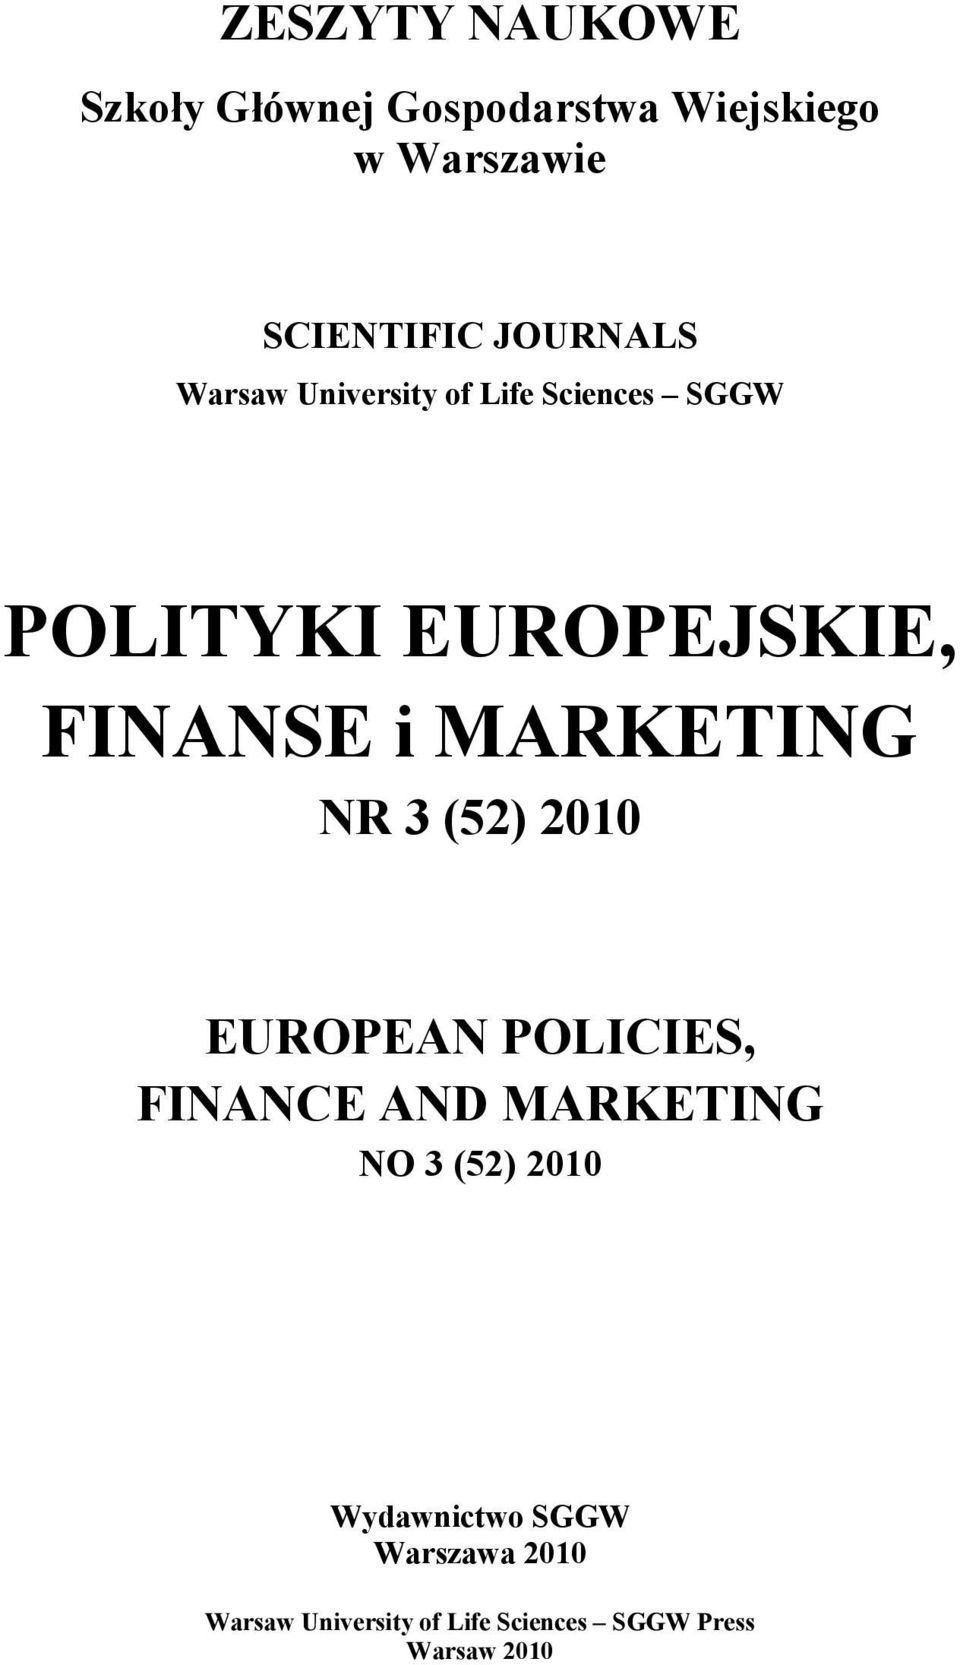 MARKETING NR 3 (52) 2010 EUROPEAN POLICIES, FINANCE AND MARKETING NO 3 (52) 2010